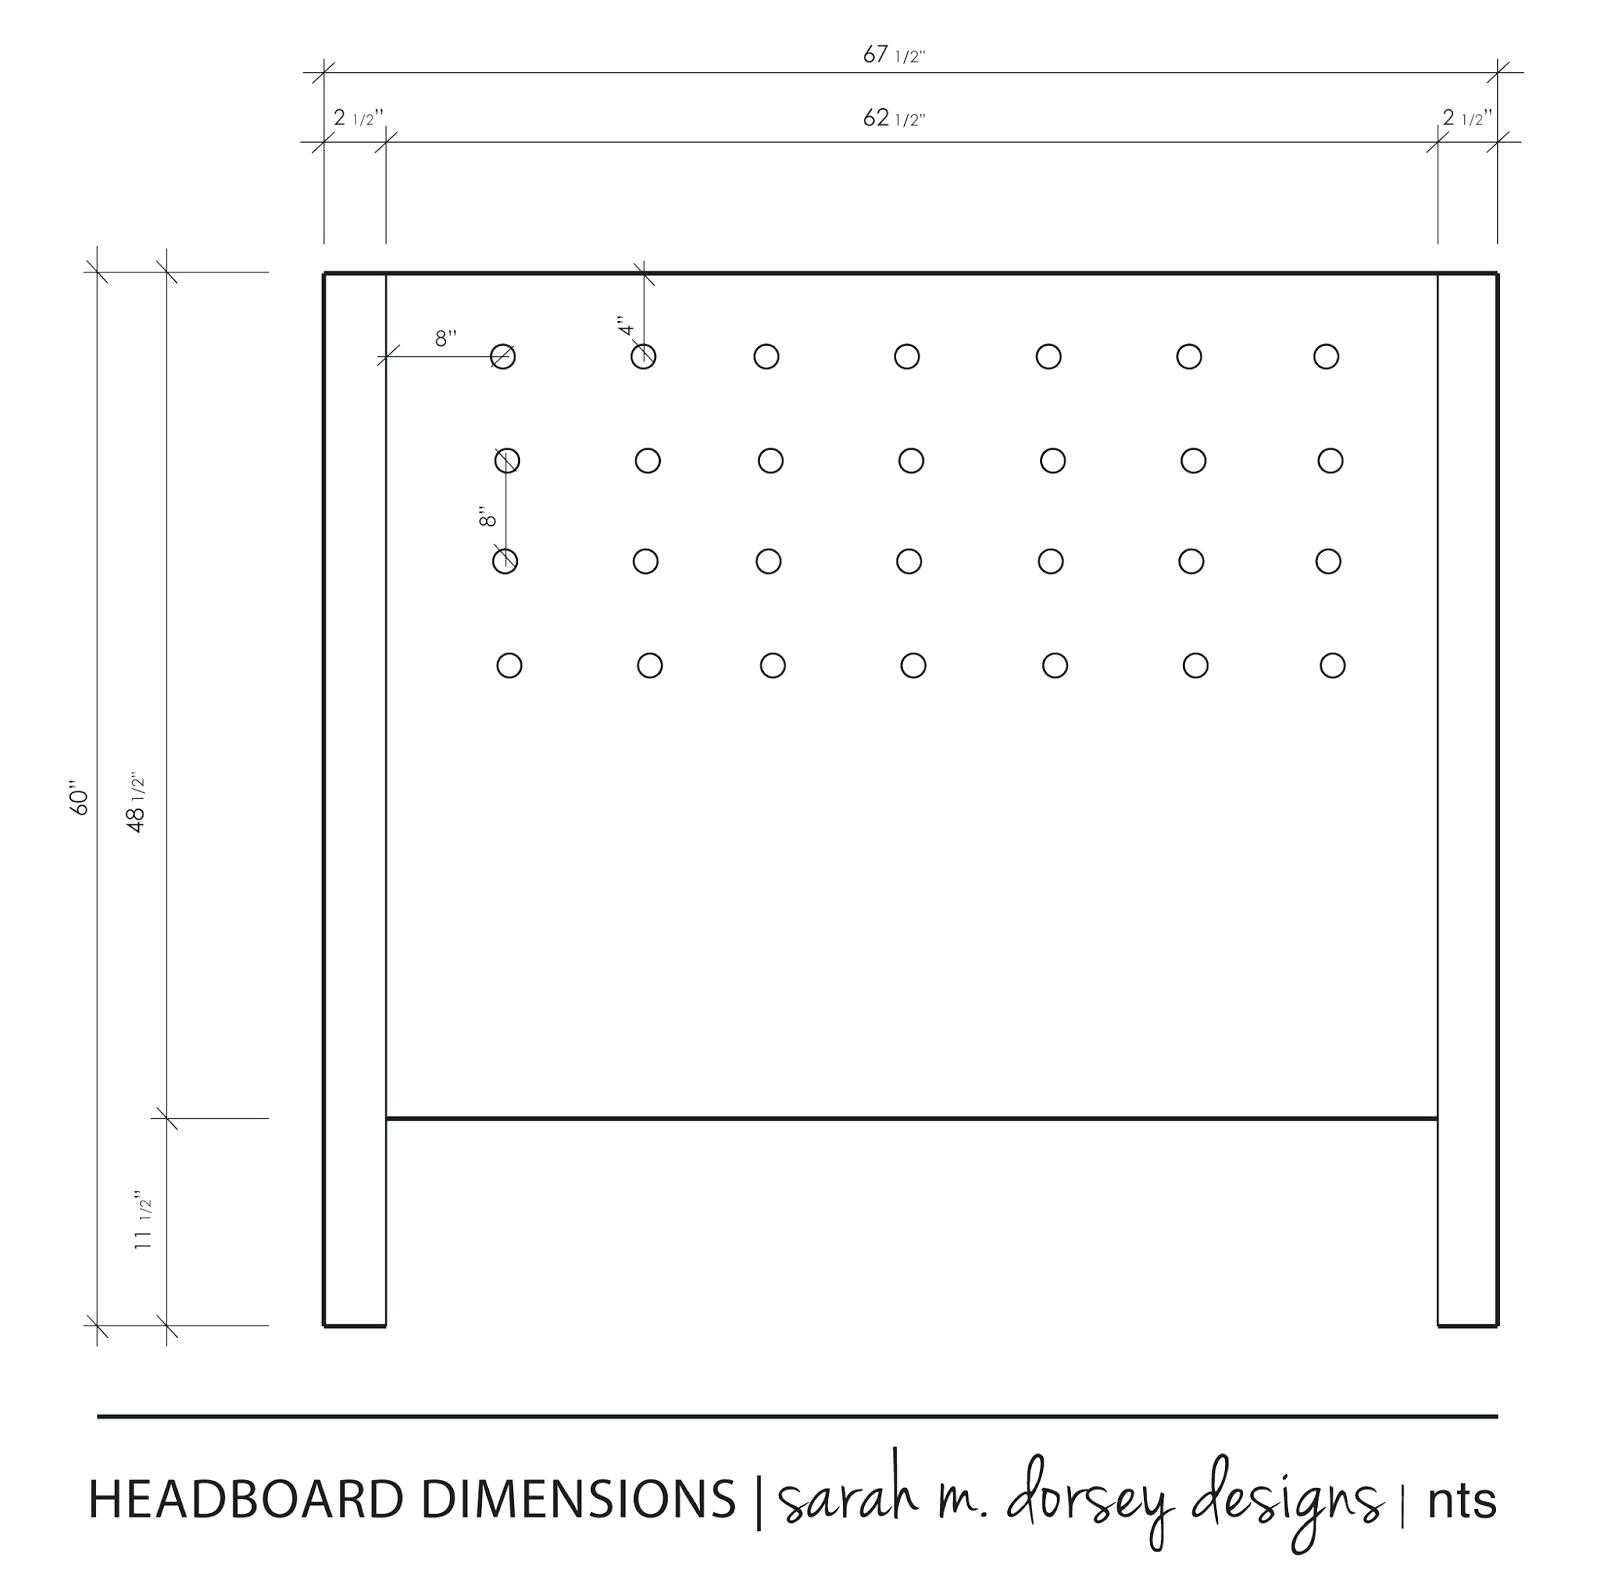 Inspirational Queen Size Headboard Dimensions Diy Queen Size